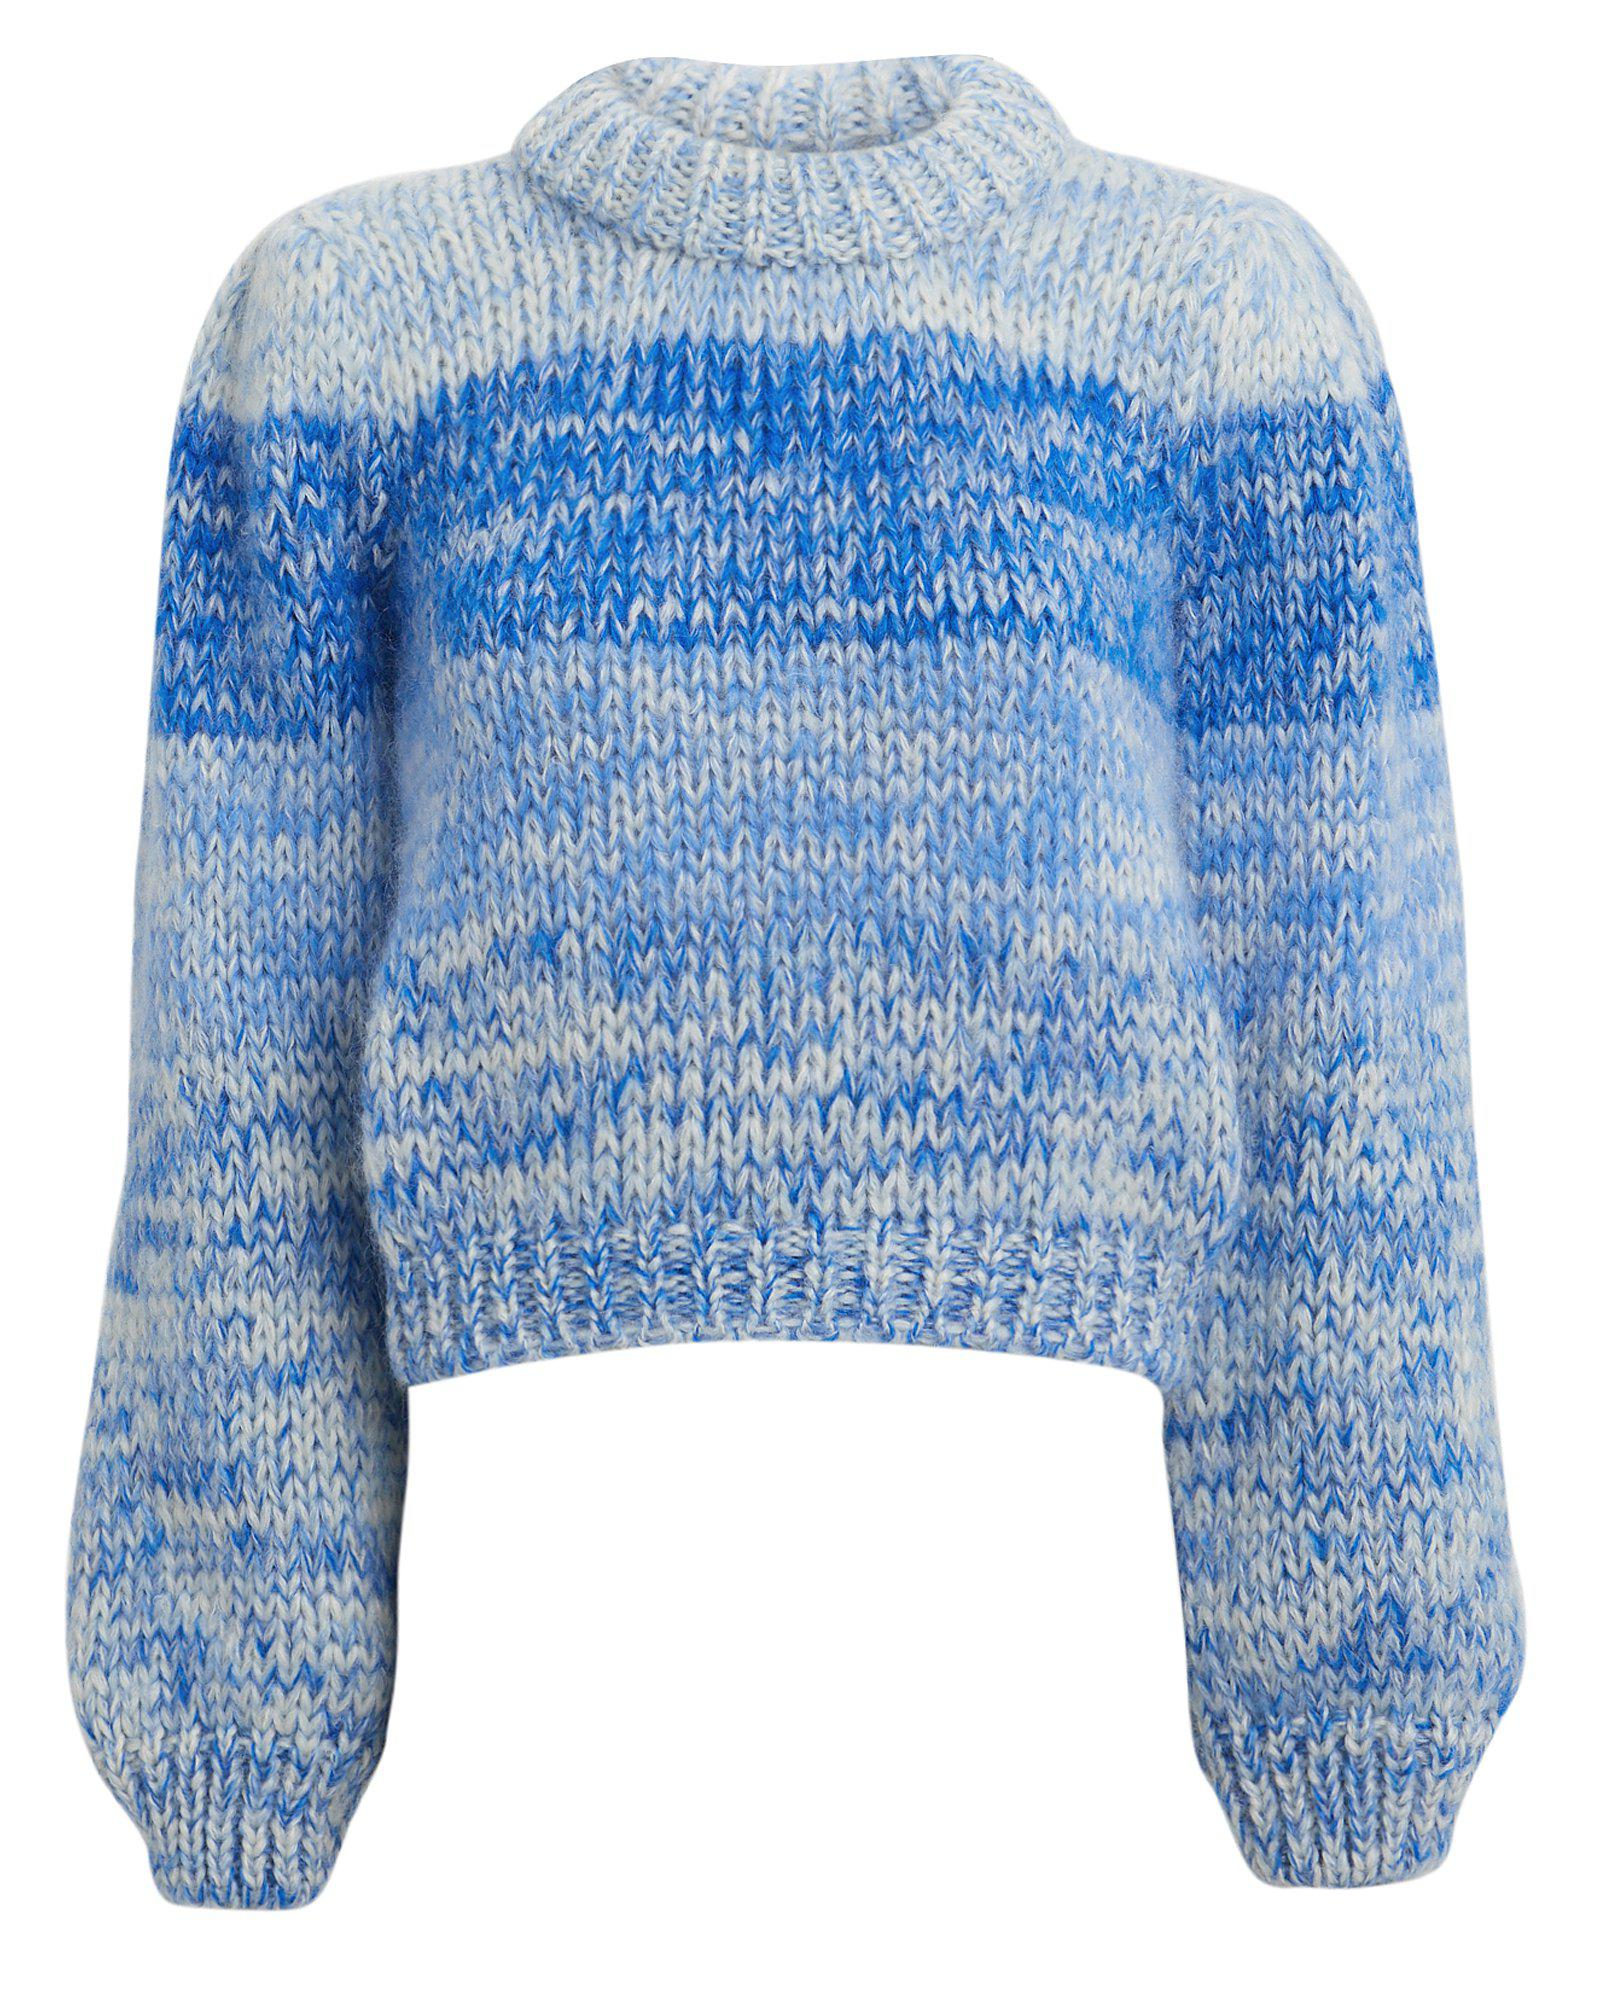 Lyst - Ganni Wool And Mohair Sweater in Blue 6a6a2fc7d